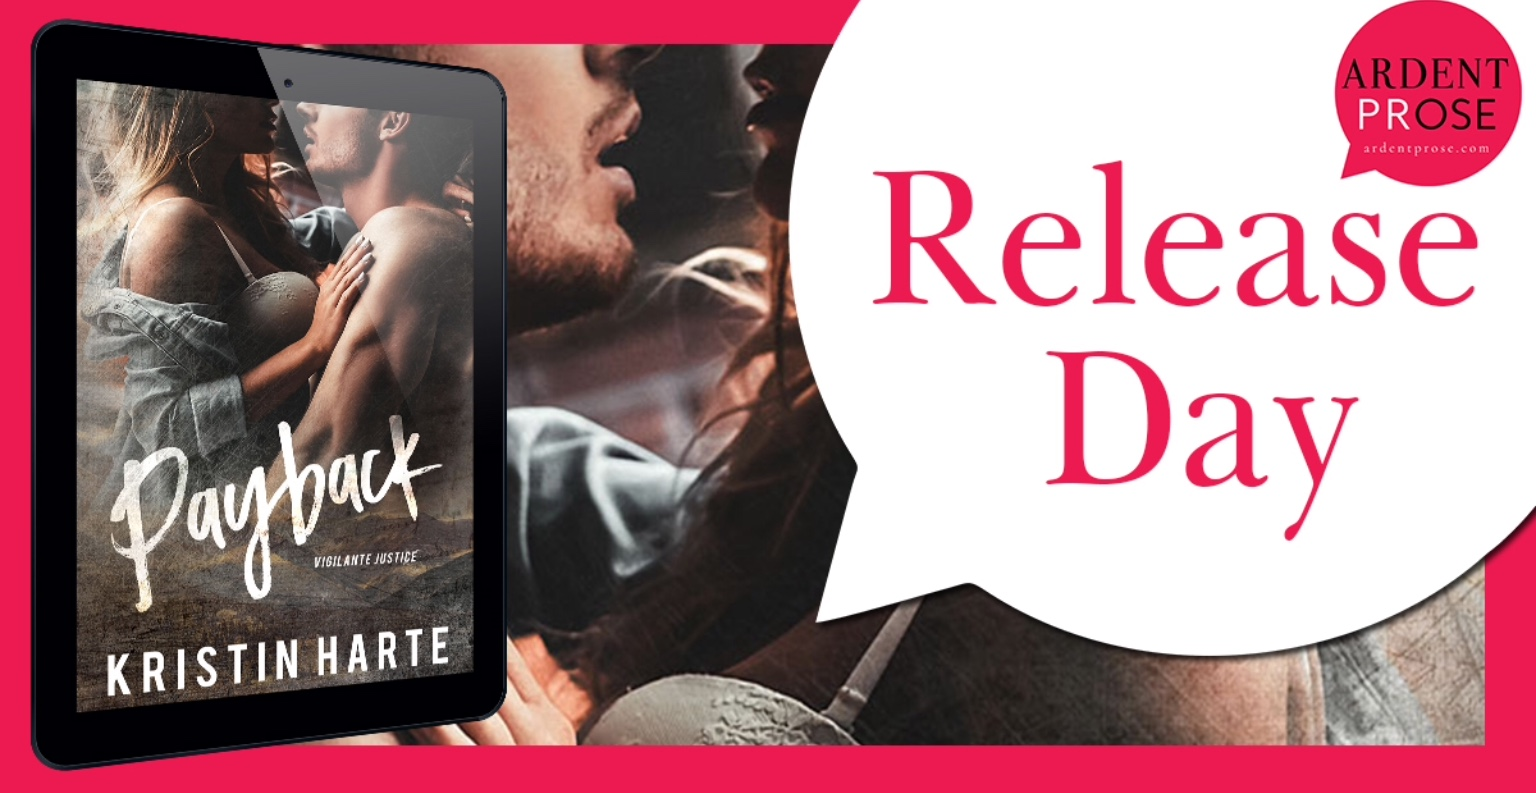 Spotlight: 'Payback' by Kristin Harte